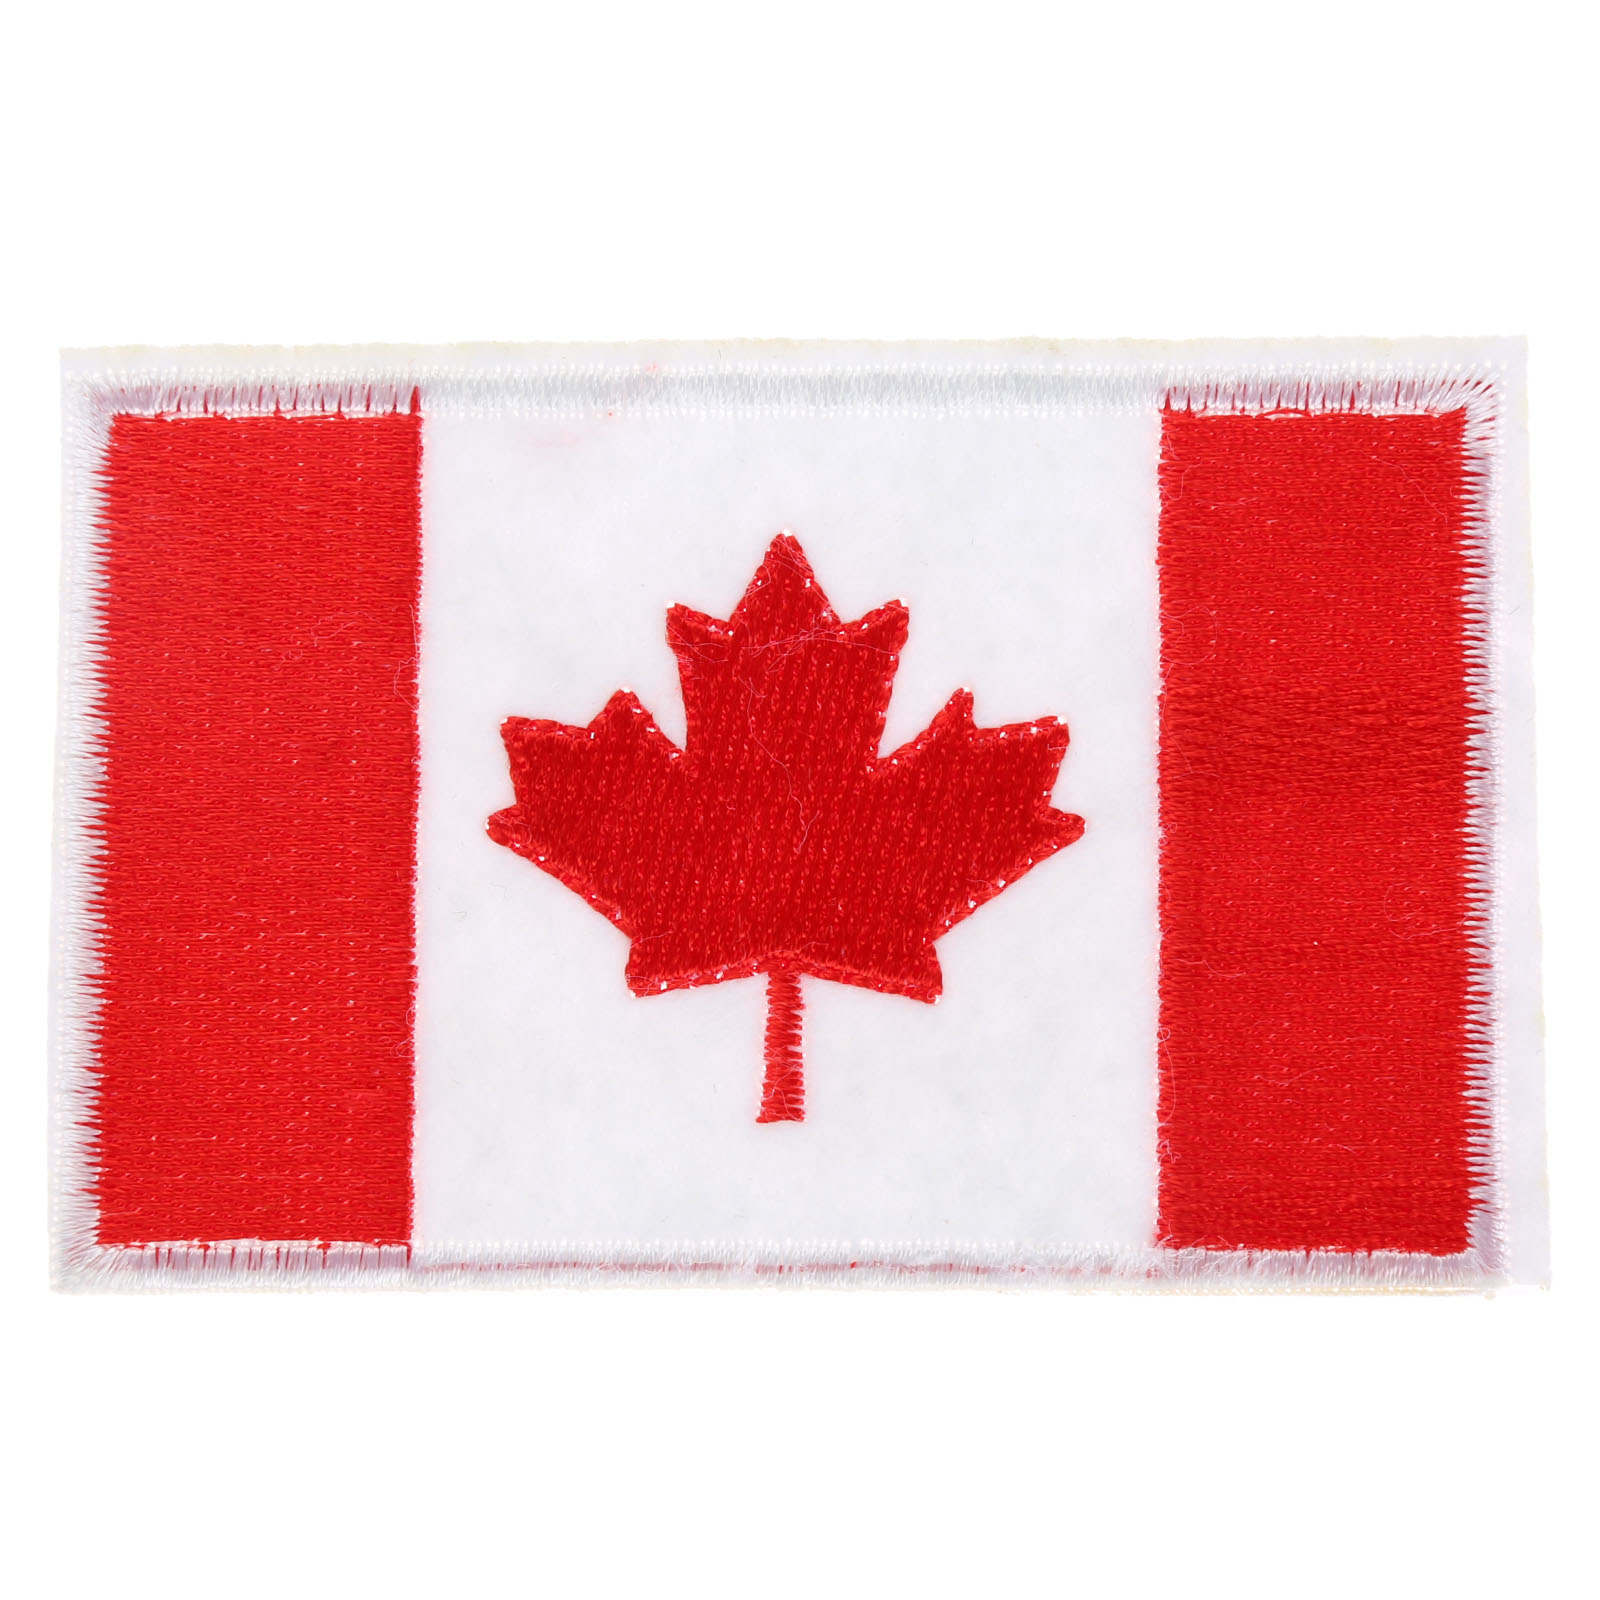 Flag Design Ideas flag design ideas Canada Canadian Country Flag Fashion Embroidered Patches For Clothes Iron On Patch Girls Idea Deal With